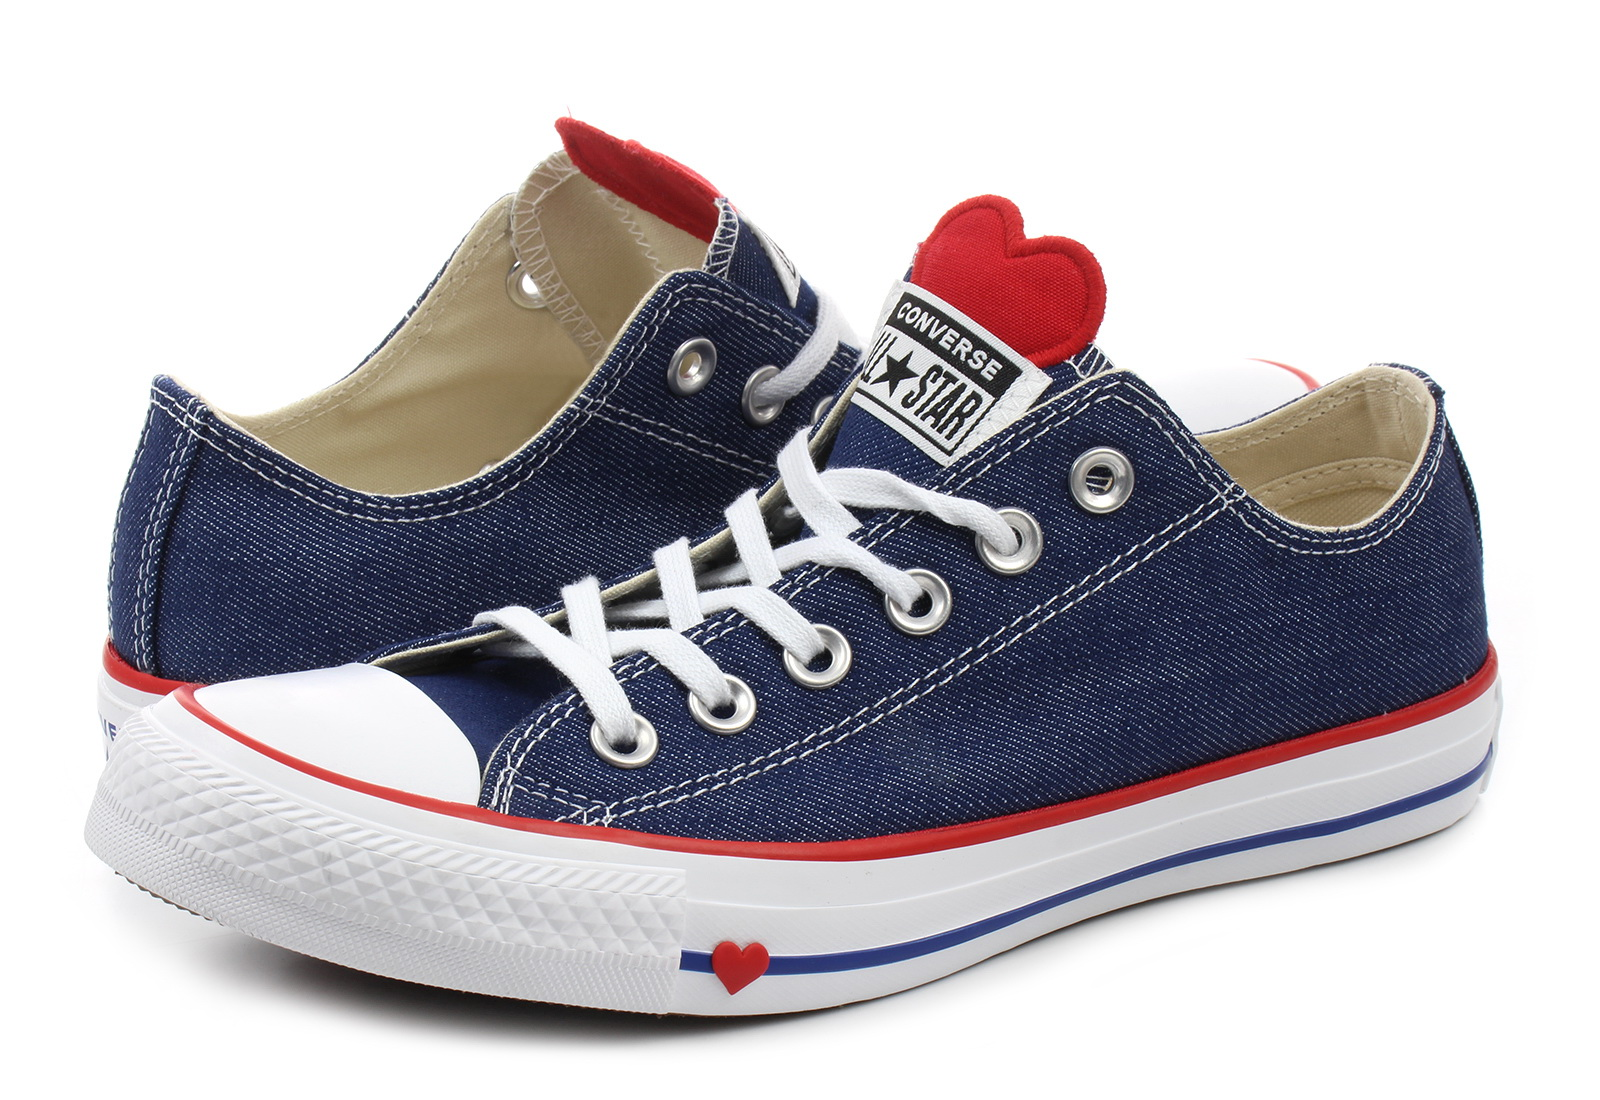 Converse Tornacipő - Ct As Specialty Ox - 163308C - Office Shoes ... 26ad9661d6